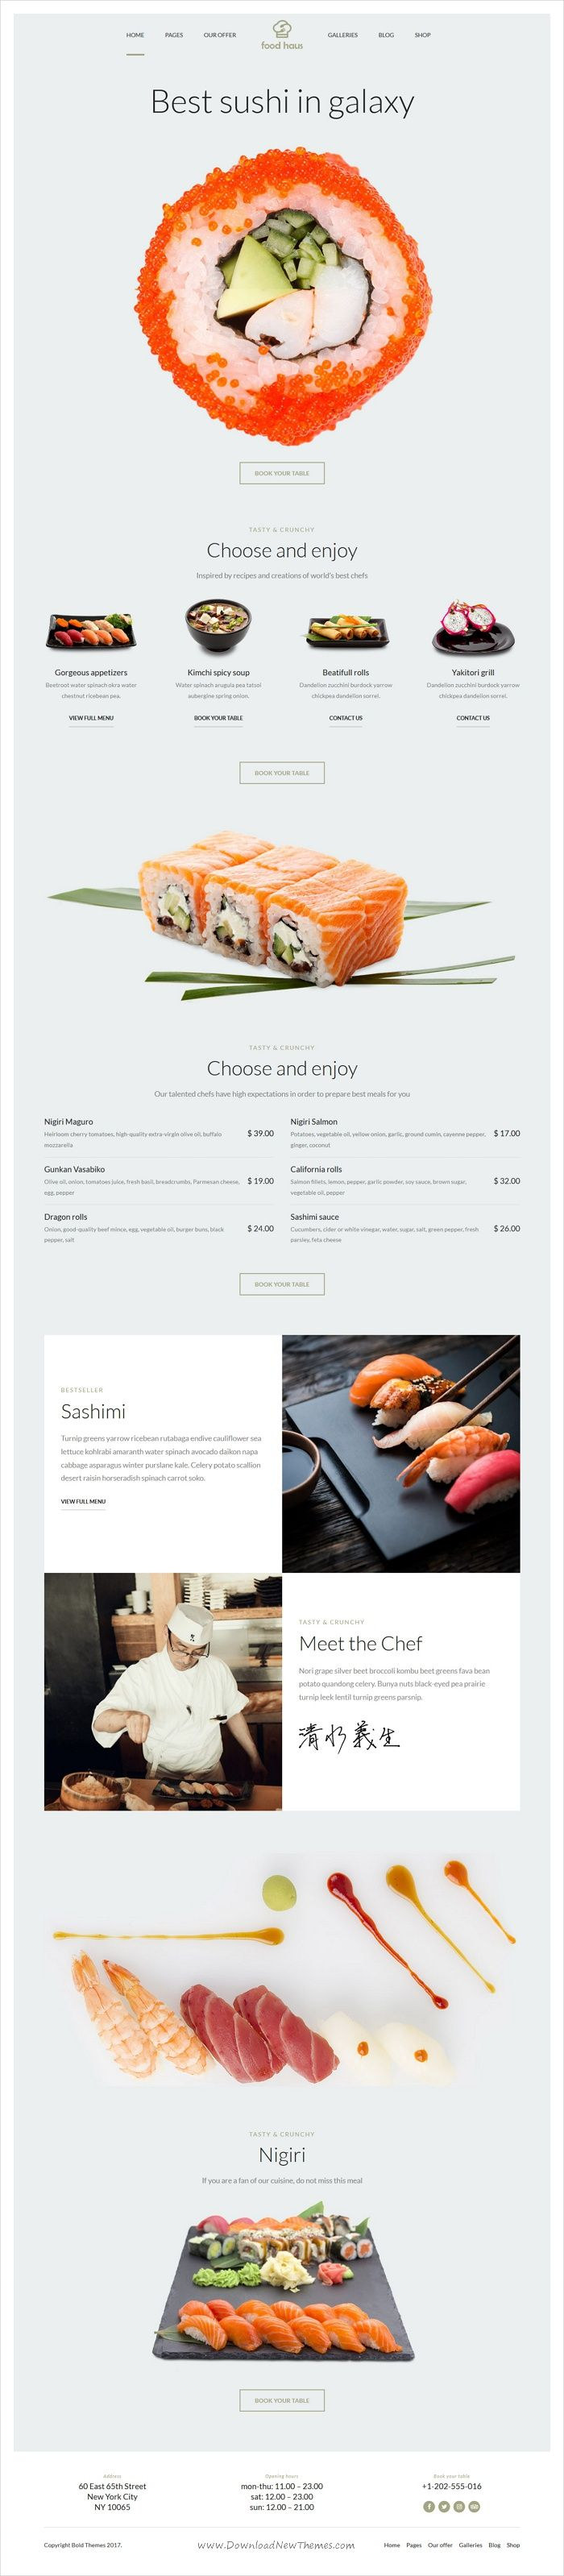 Food haus is a wonderful responsive #WordPress theme for #sushi #restaurant, bar, cafe & tavern websites with 6 unique homepage layouts download now➩ https://themeforest.net/item/food-haus-restaurant-wordpress-theme/19441479?ref=Datasata